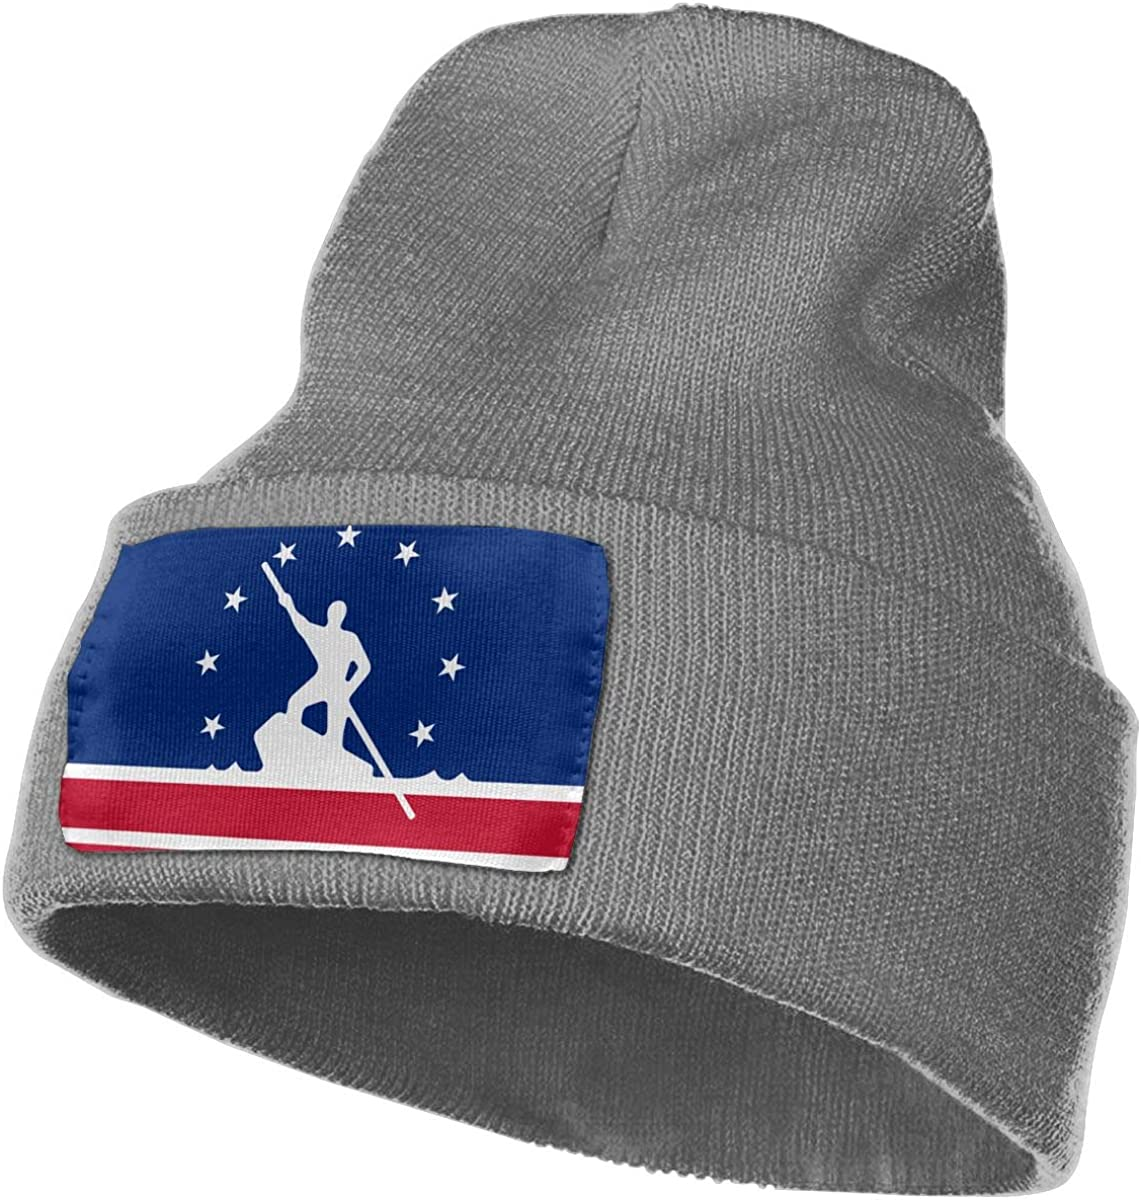 JimHappy Flag of Richmond Hat for Men and Women Winter Warm Hats Knit Slouchy Thick Skull Cap